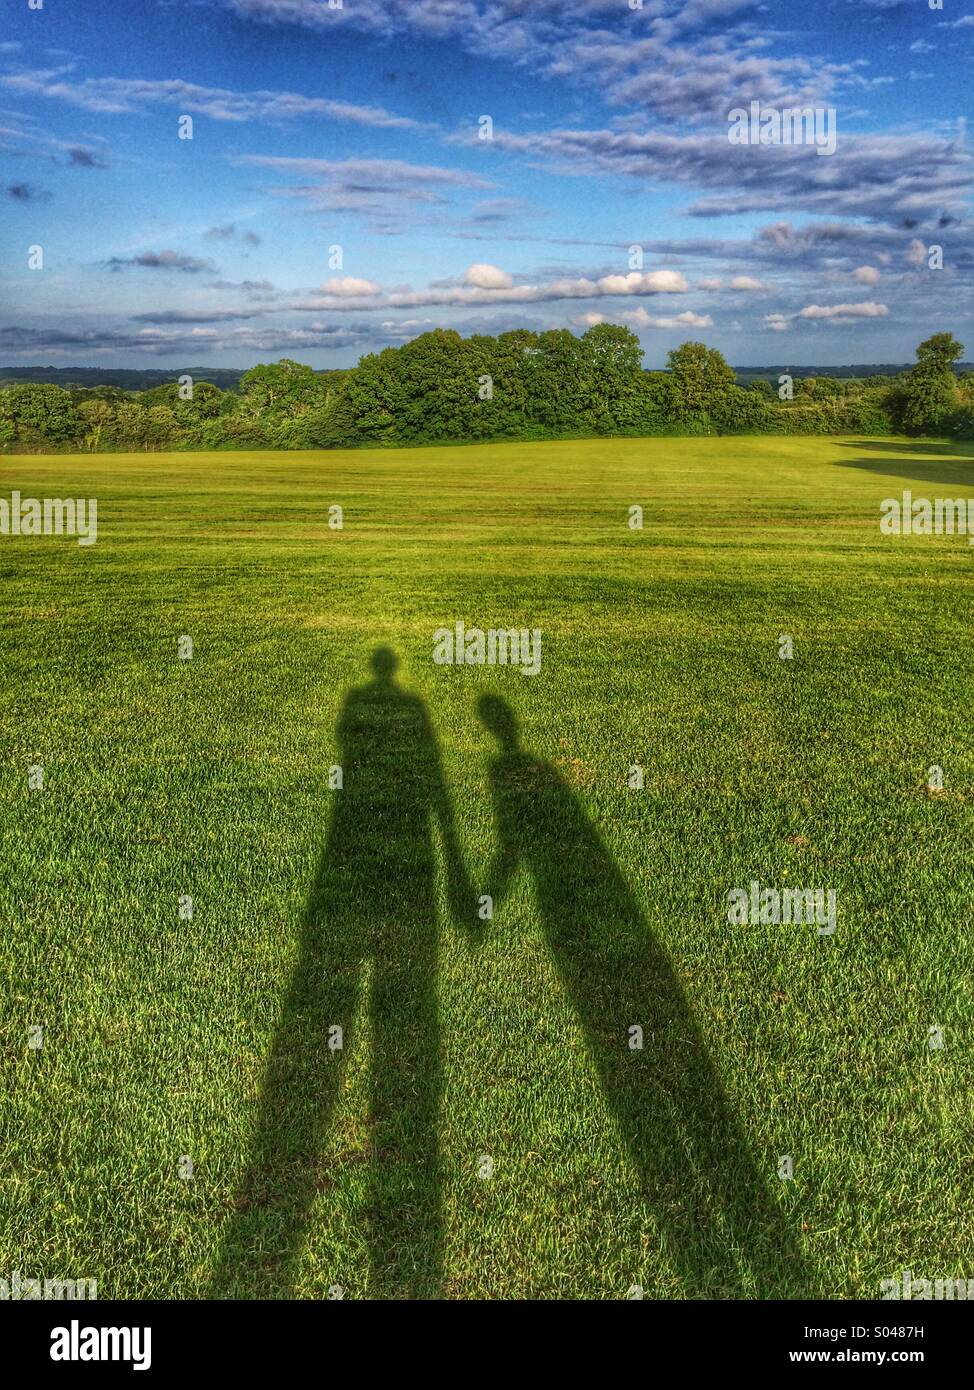 Shadows on field - Stock Image